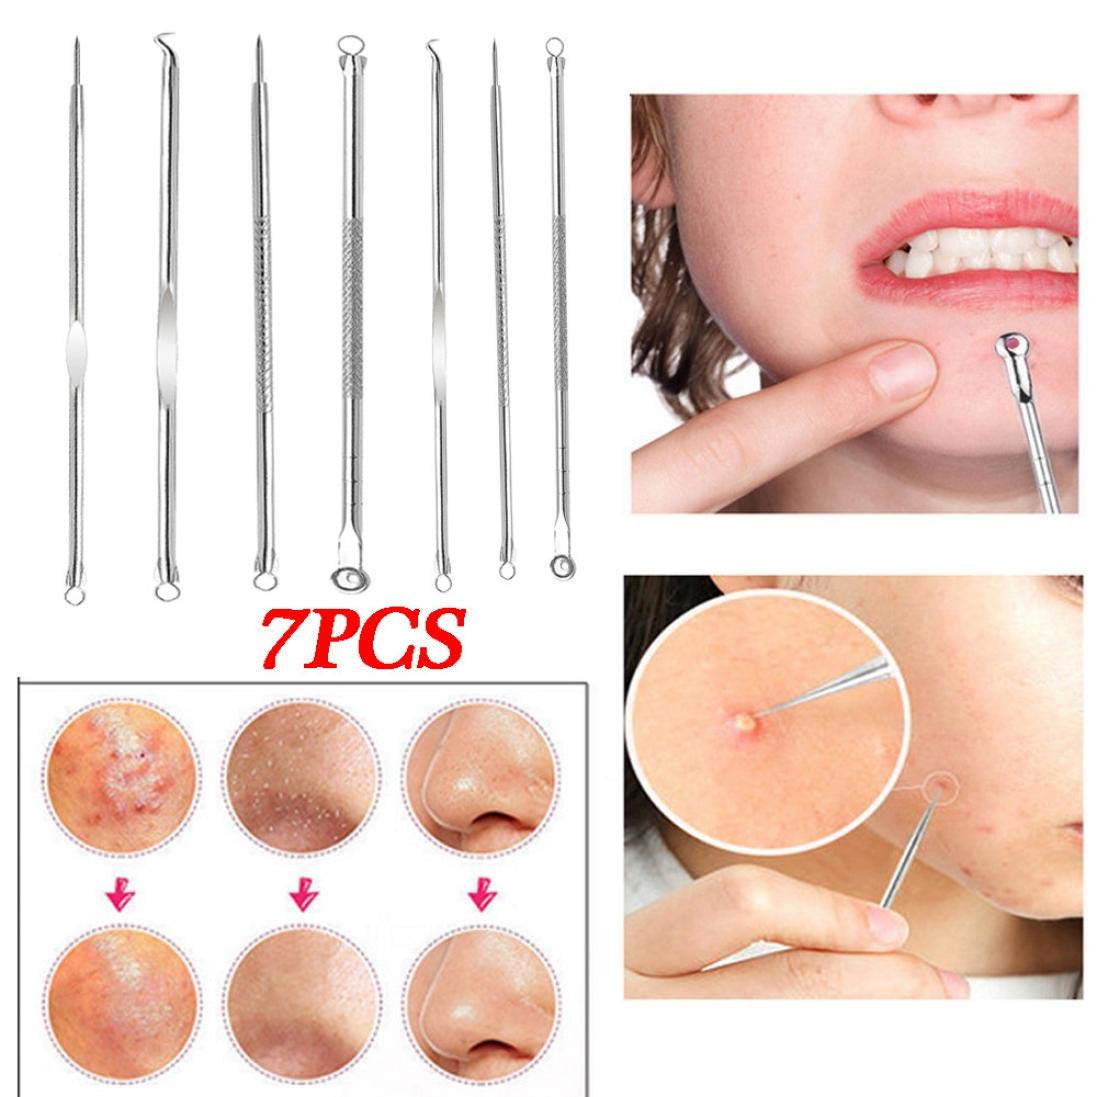 Blackhead Remover Blackheads Removal Tool,Yezike 7 in 1 Pimple Popper  Popping Kit and Blackhead